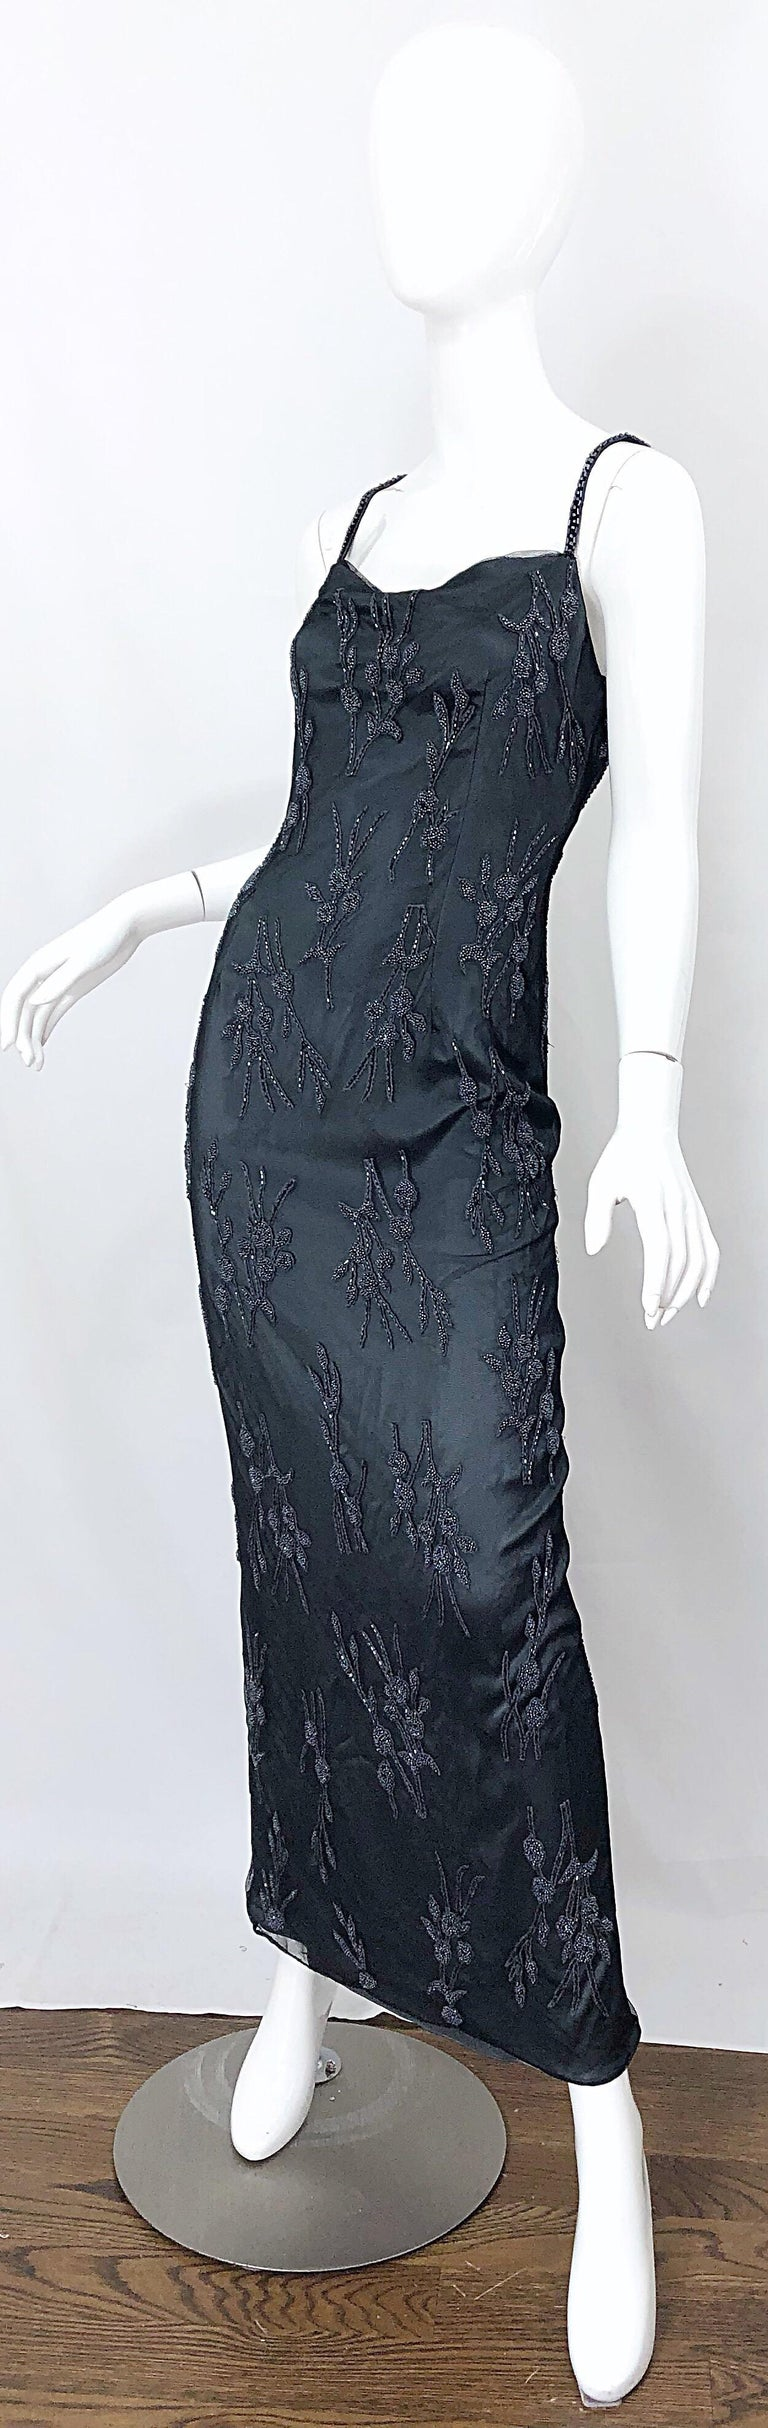 Vintage Bob Mackie Size 8 Grey Beaded 1990s Sequin Sleeveless 90s Evening Gown For Sale 1